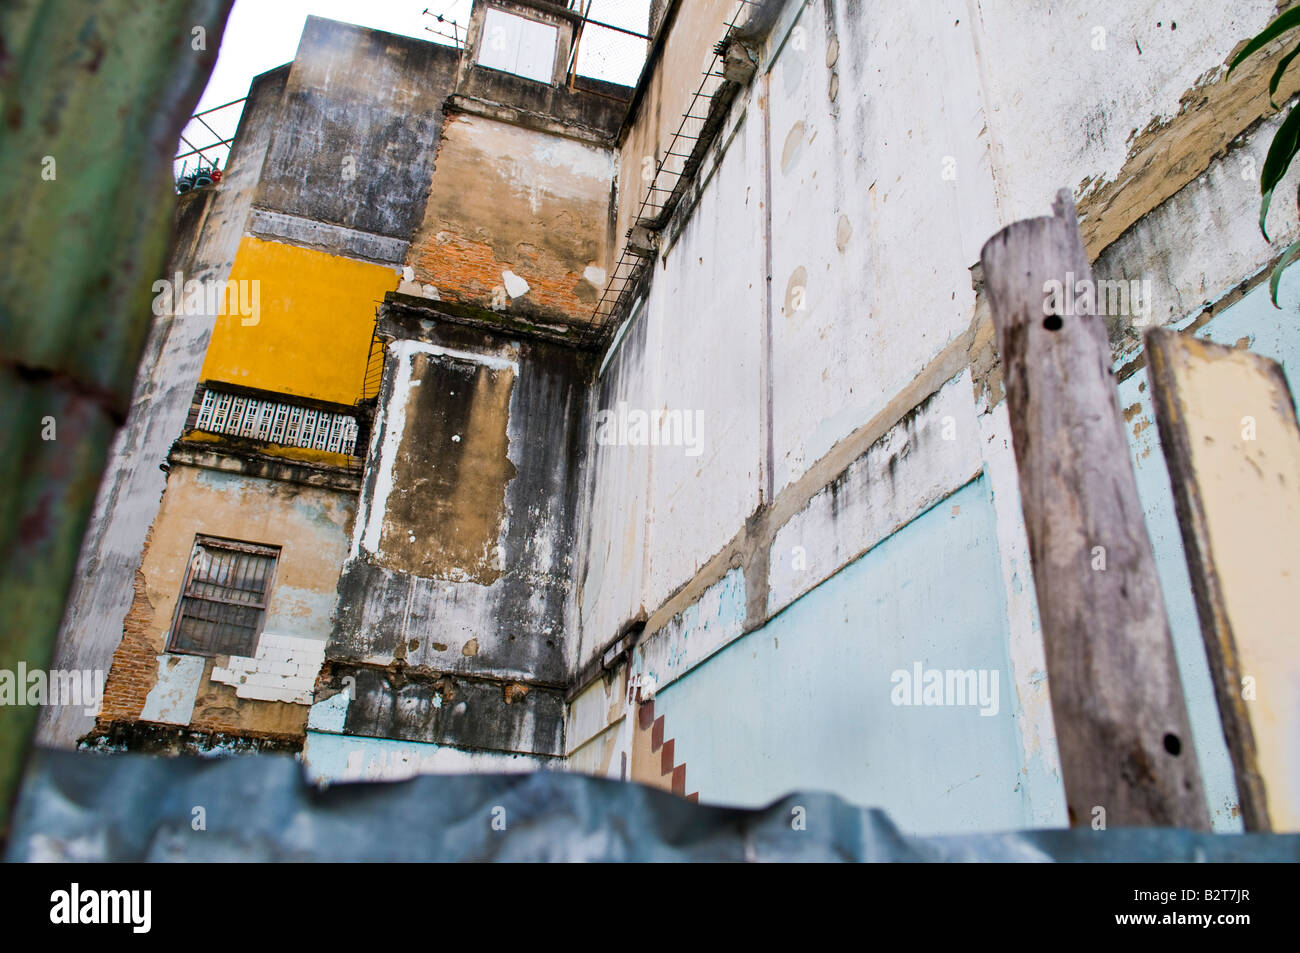 Urban textures of decay and dirt buildings from bangkok, Thailand, SE asia - Stock Image